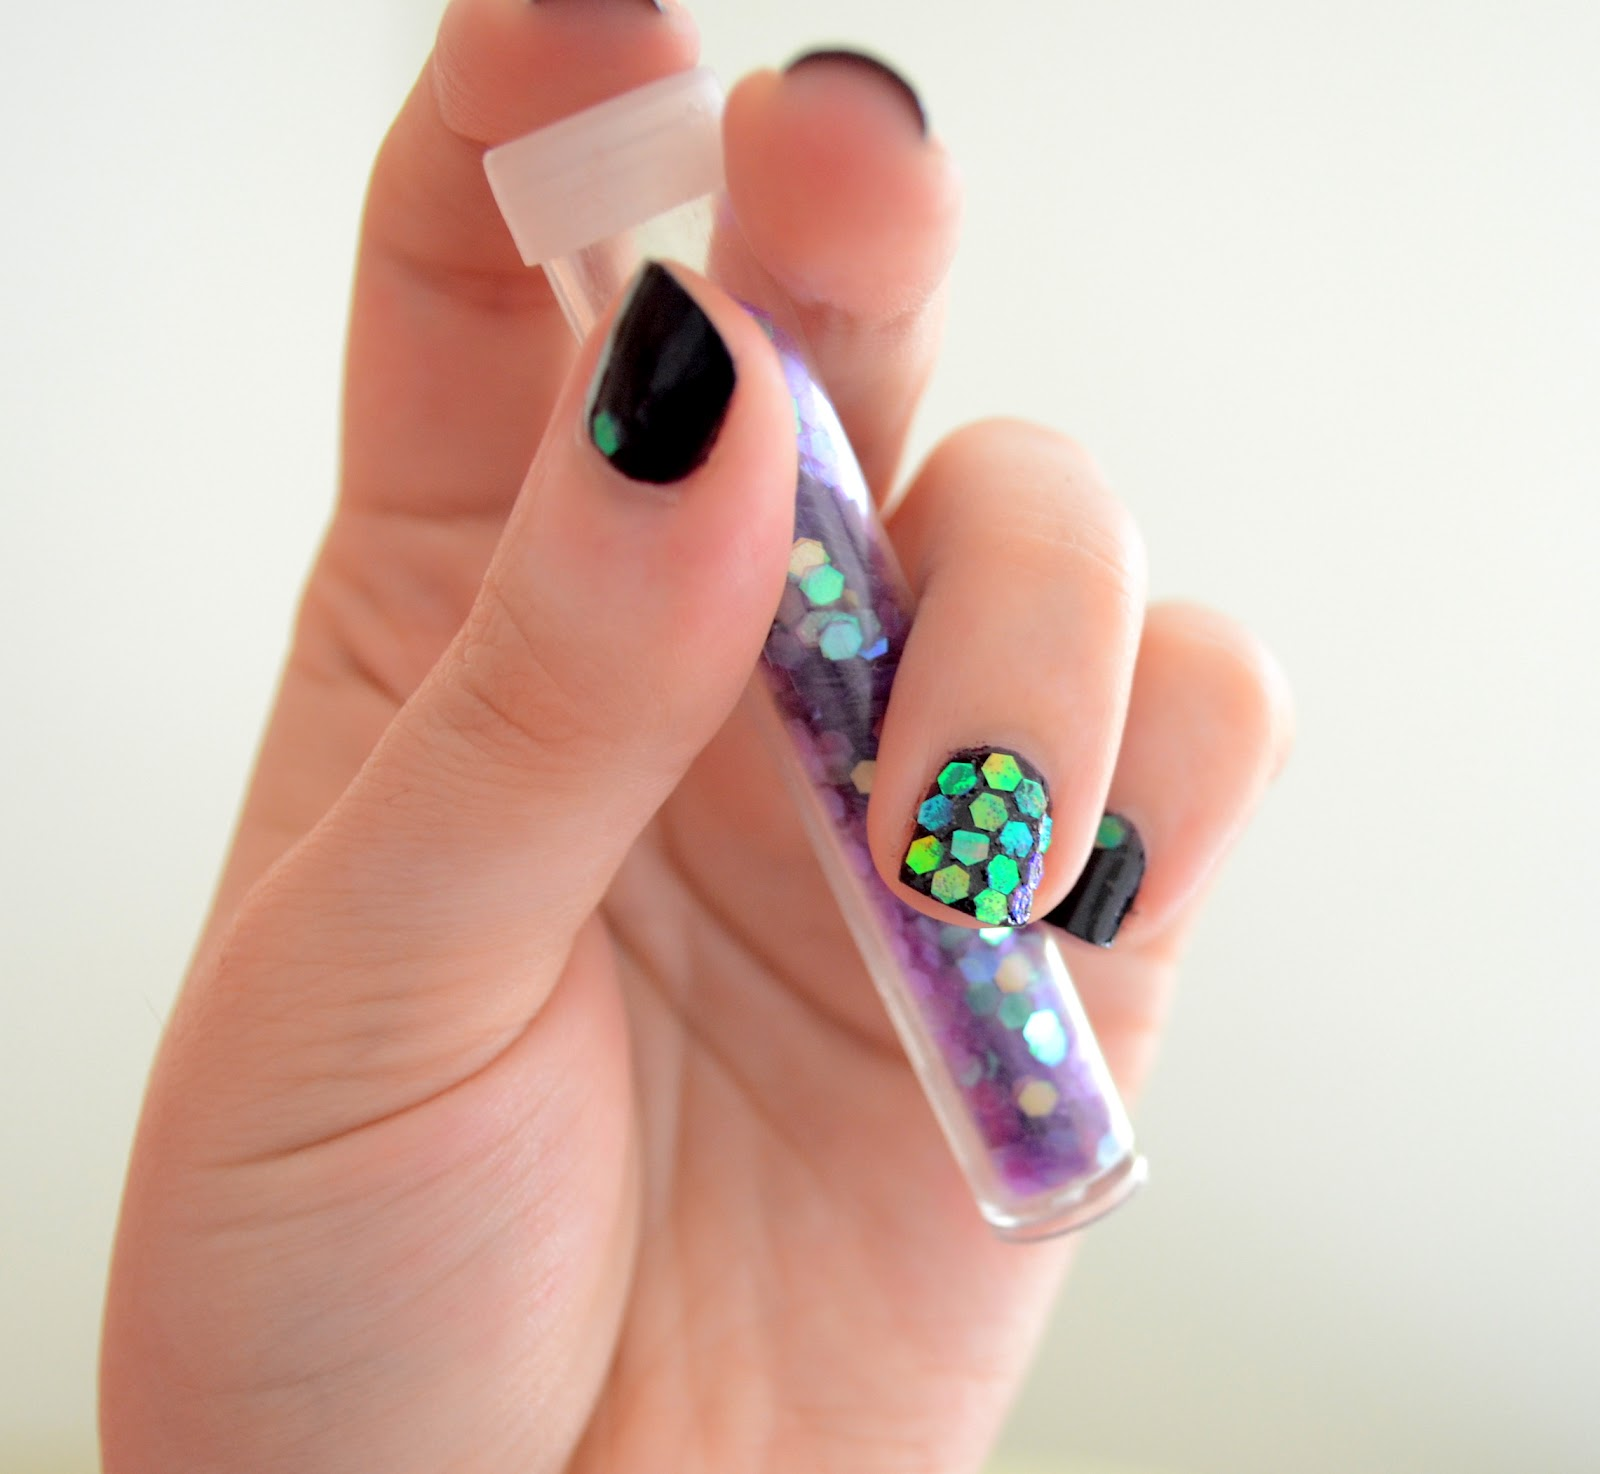 Nail Art With Tape: Very Enchanting: Nail Art Tape & Sequins Tutorial